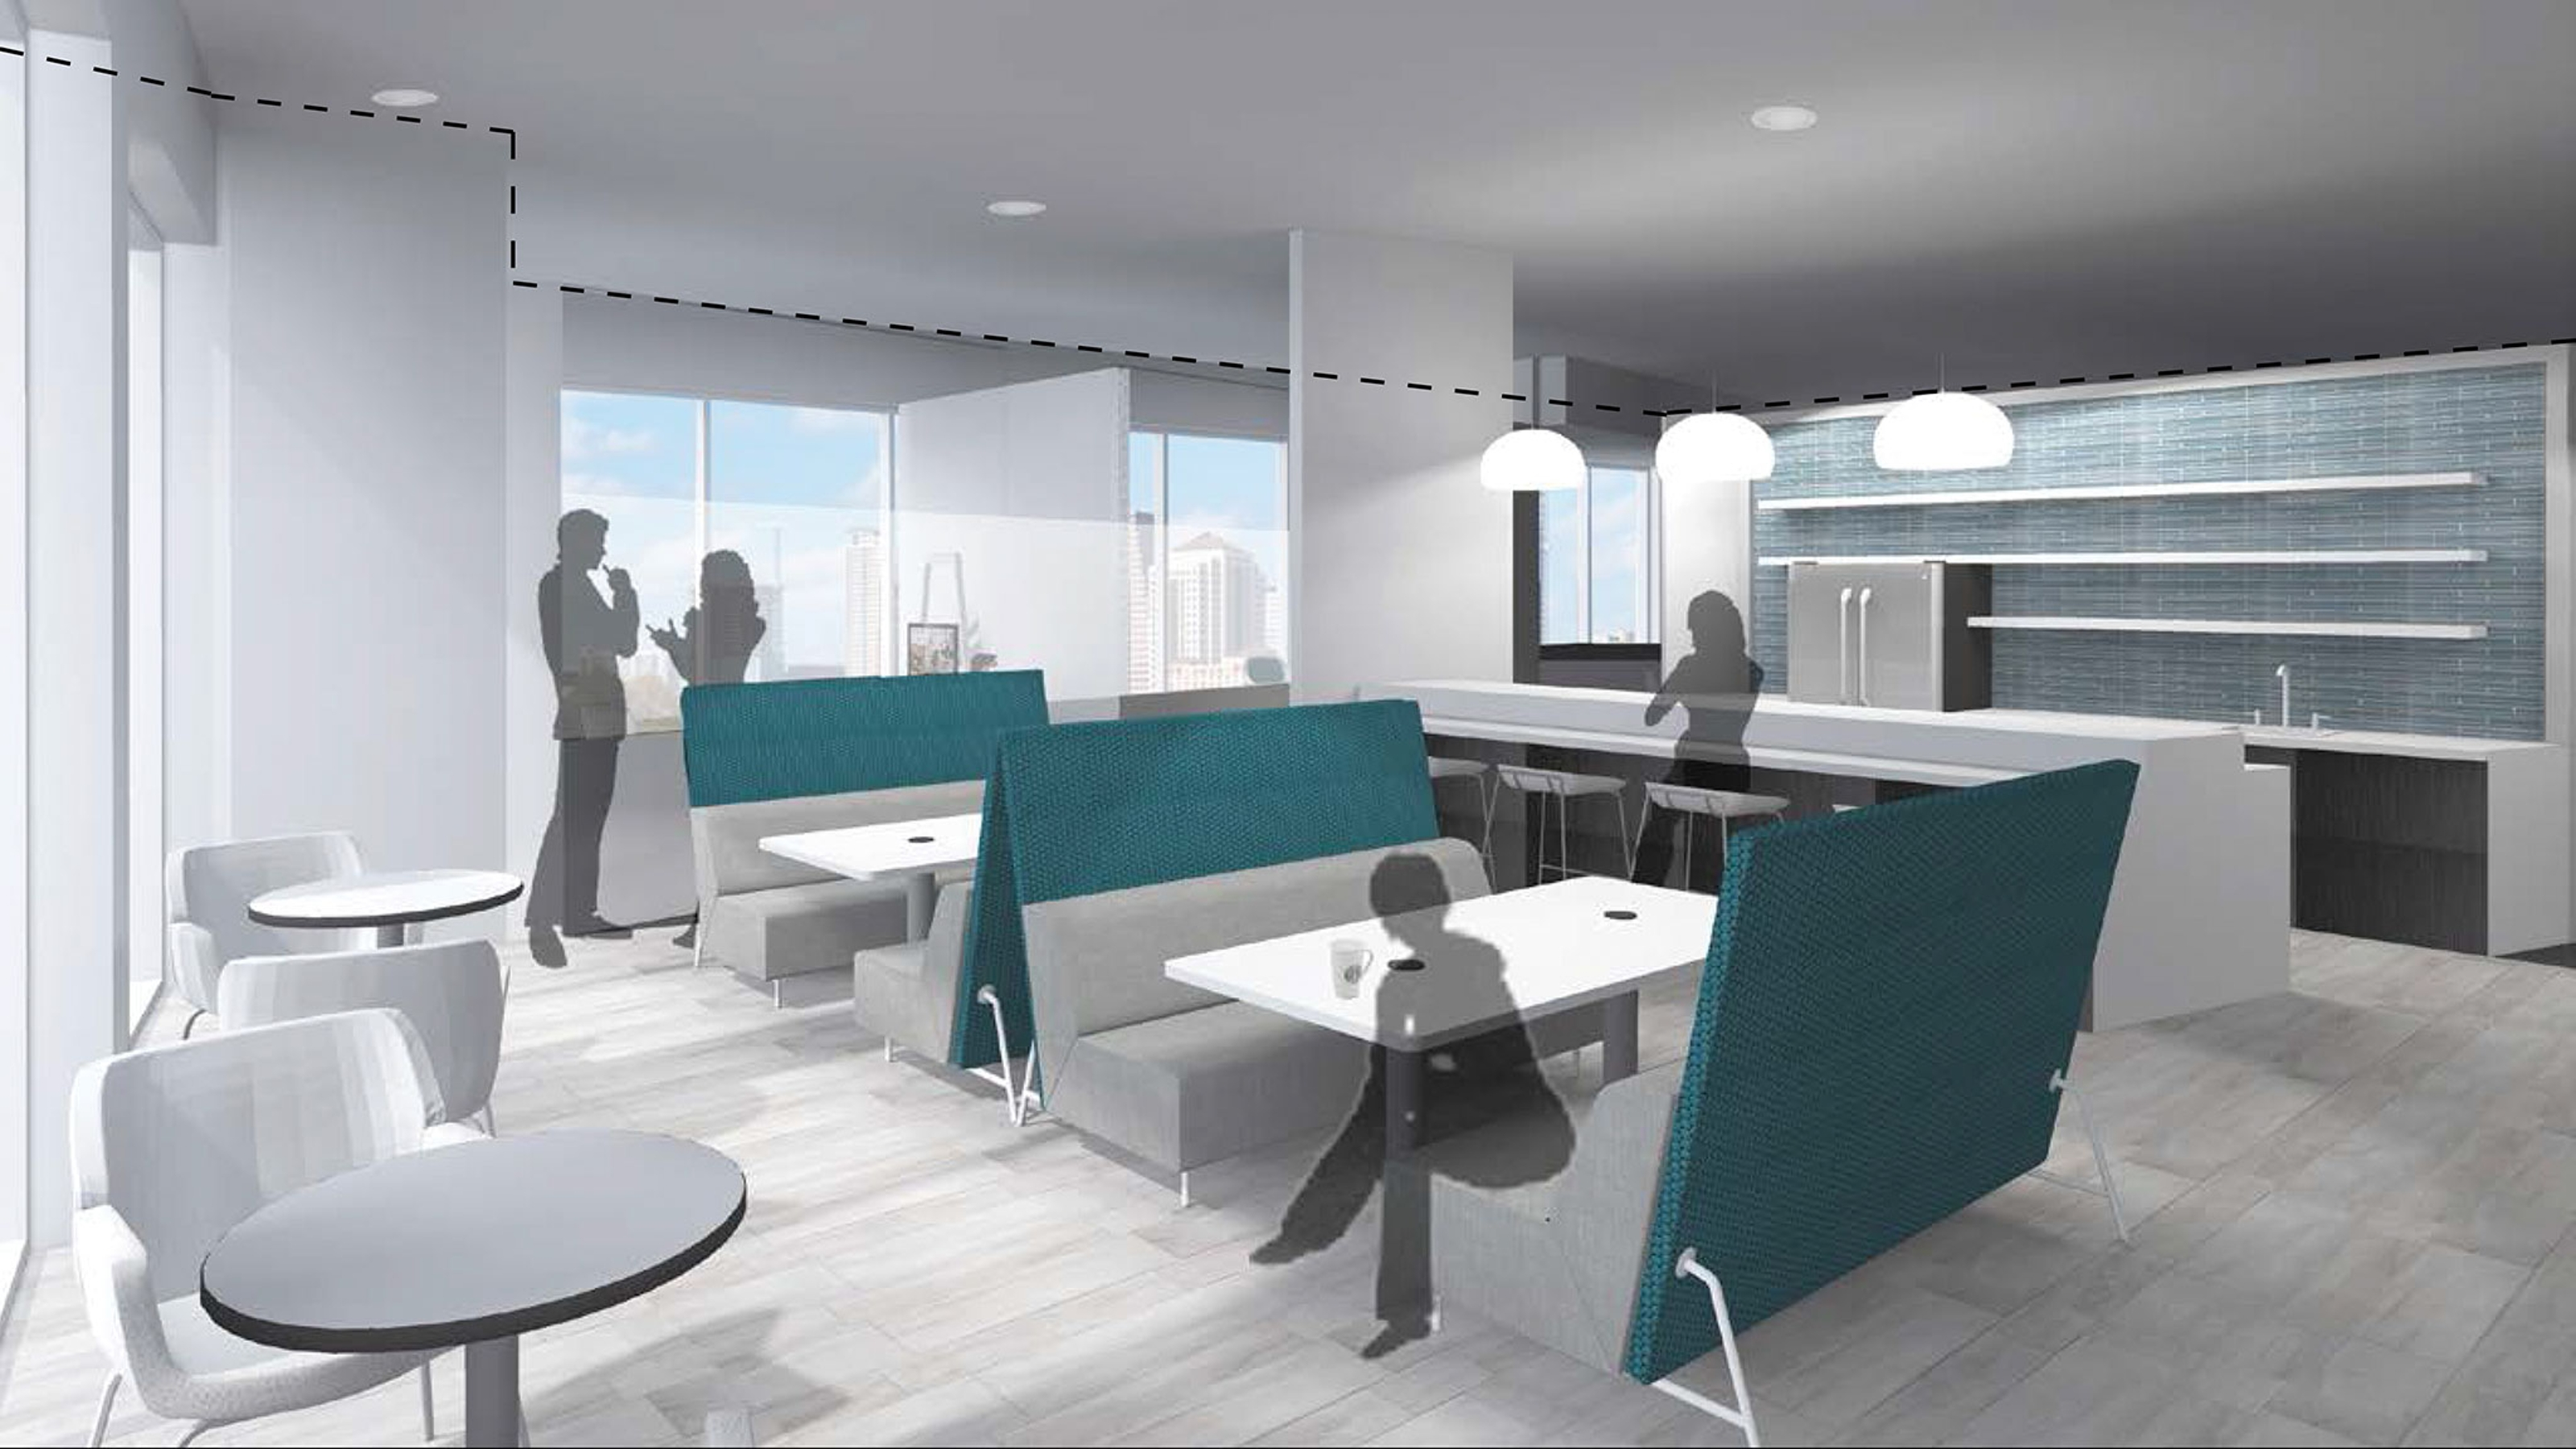 Classroom Design Competition ~ Next office interior design competition steelcase